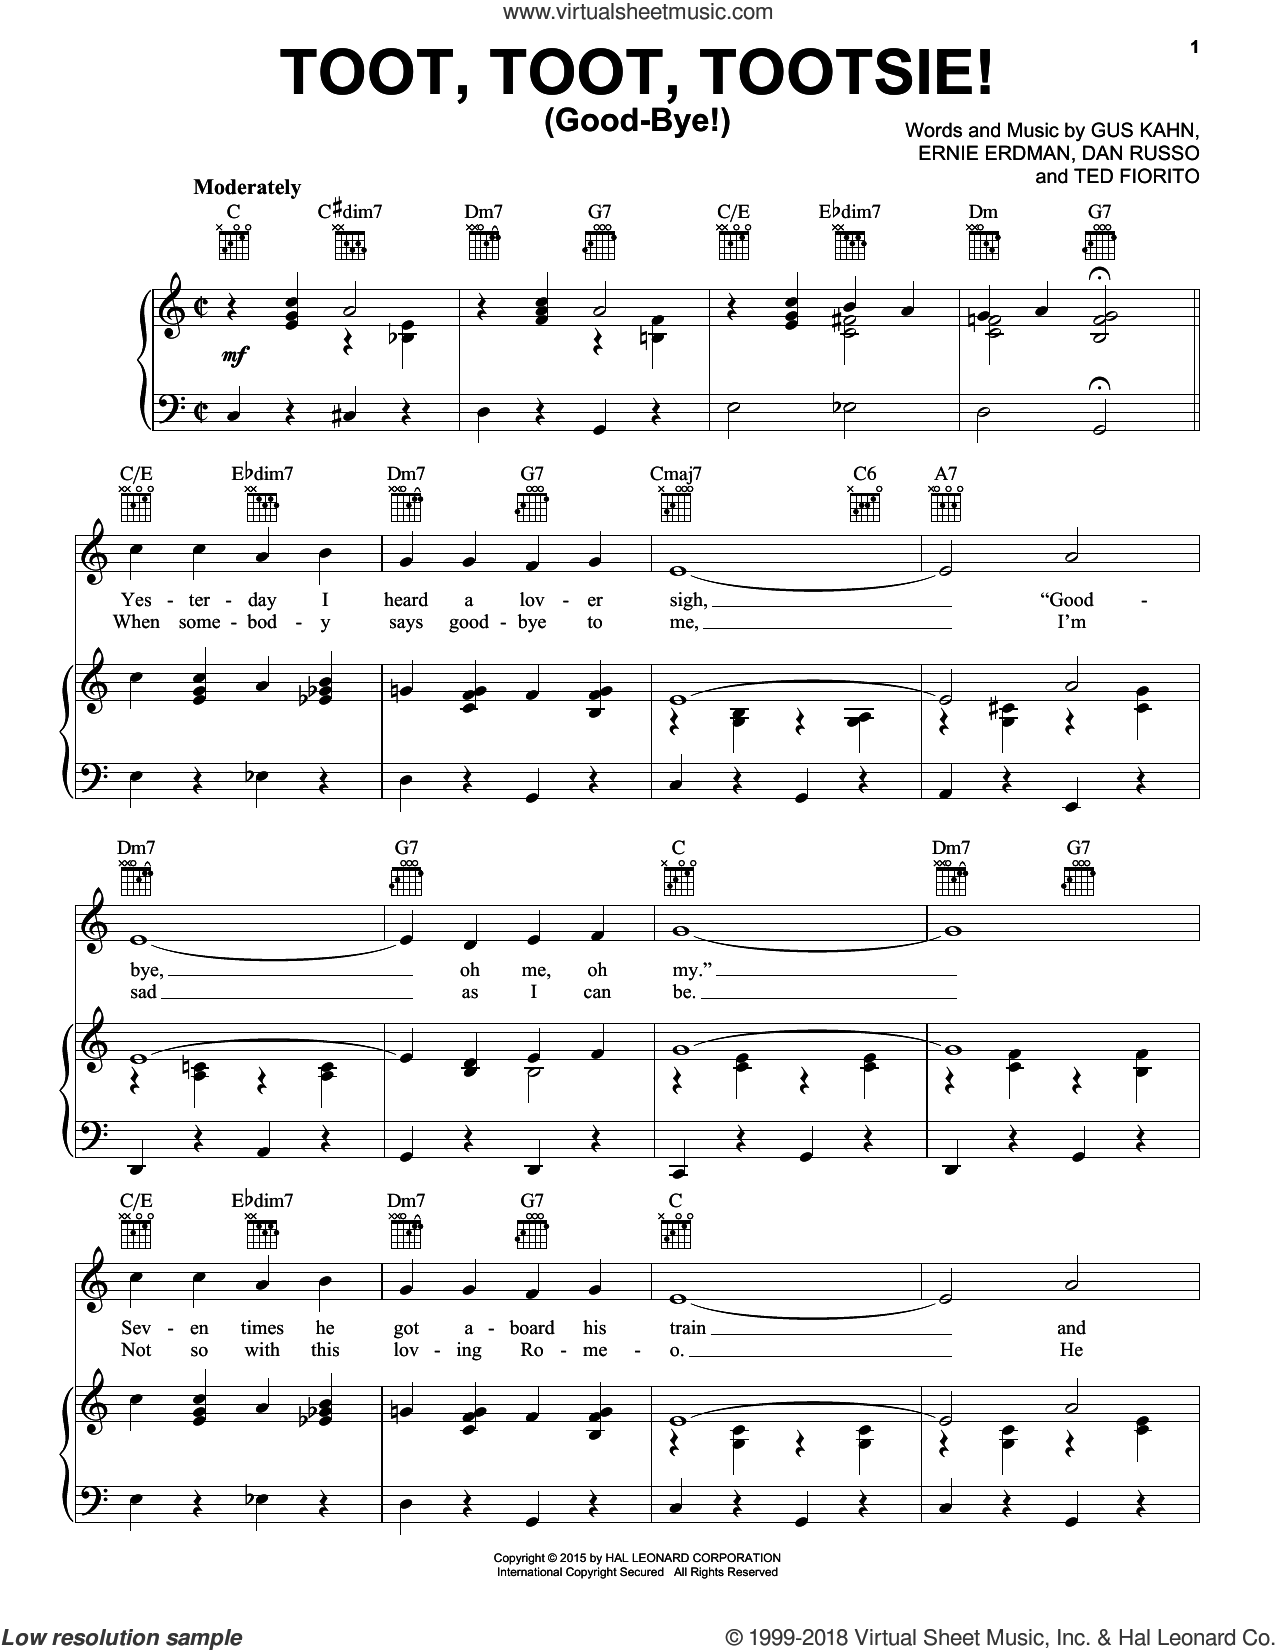 Toot, Toot, Tootsie! (Good-bye!) sheet music for voice, piano or guitar by Gus Kahn, Dan Russo, Ernie Erdman and Ted Fiorito, intermediate skill level